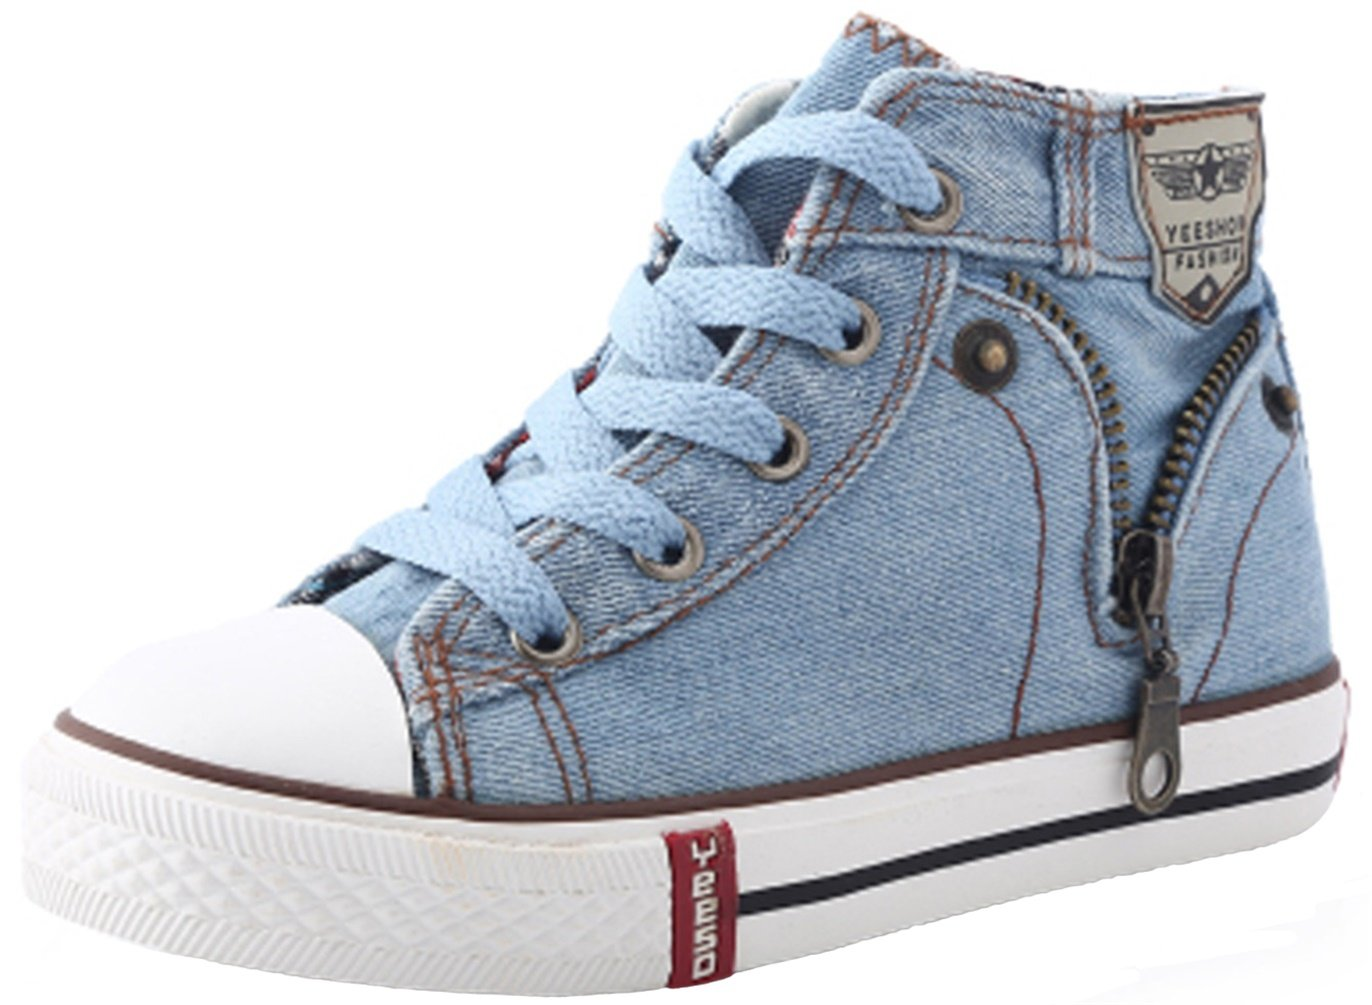 PPXID Boy's Girl's High-Top Canvas Lace up Casual Board Shoes-Light Blue 12 US Size